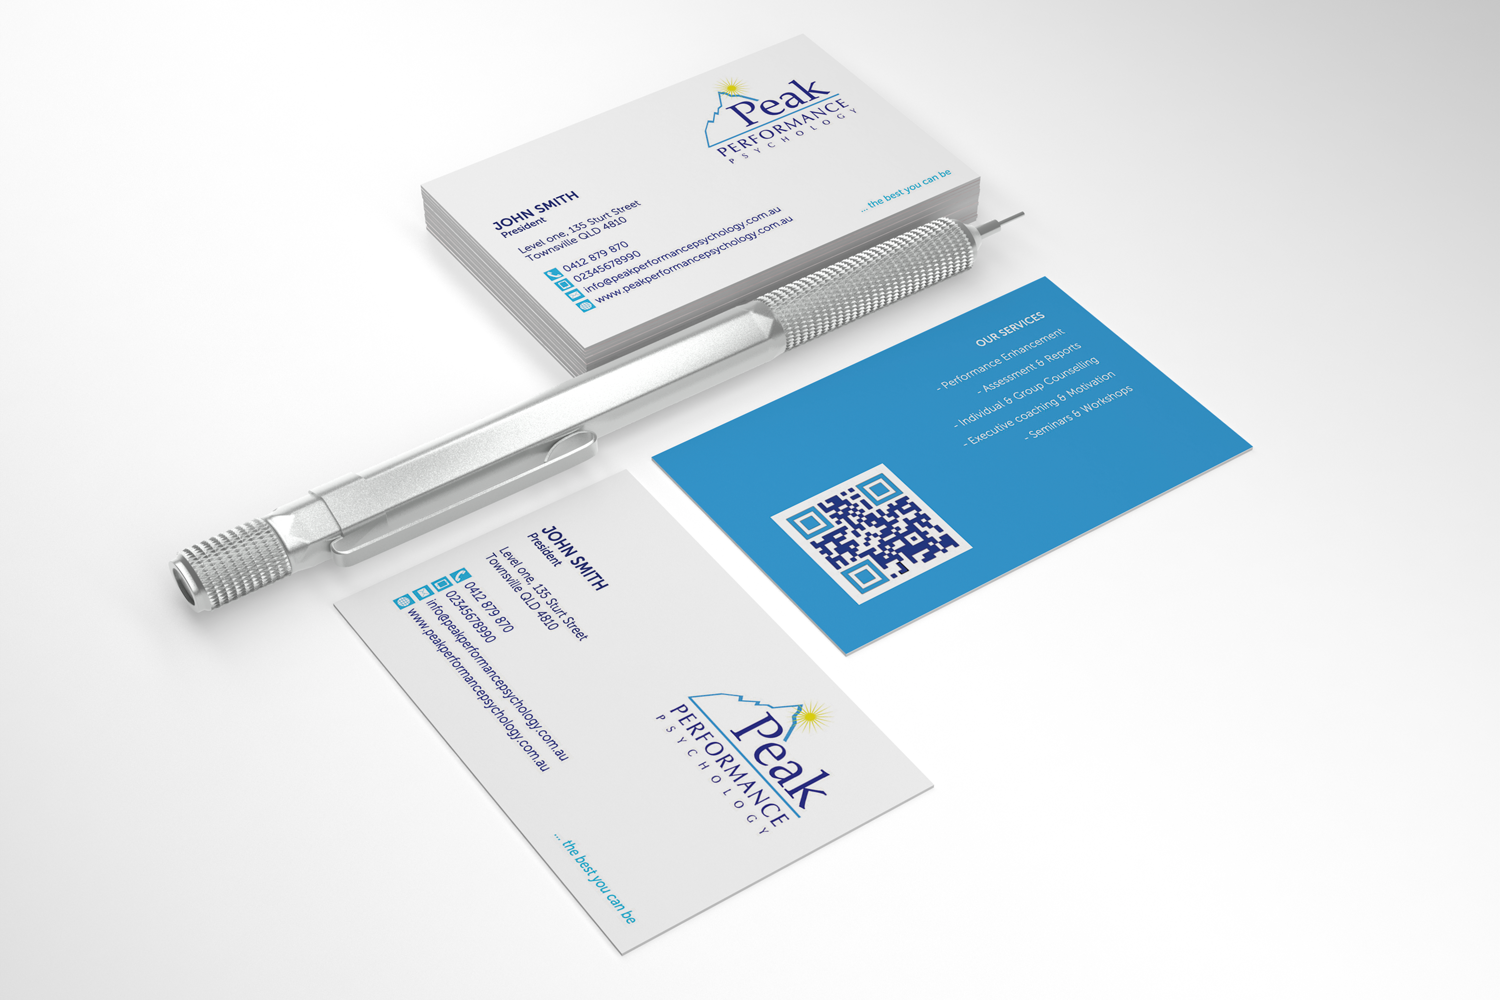 Modern professional business card design for peak performance business card design by sarah mathews for performance psychology business card design letterhead design magicingreecefo Choice Image